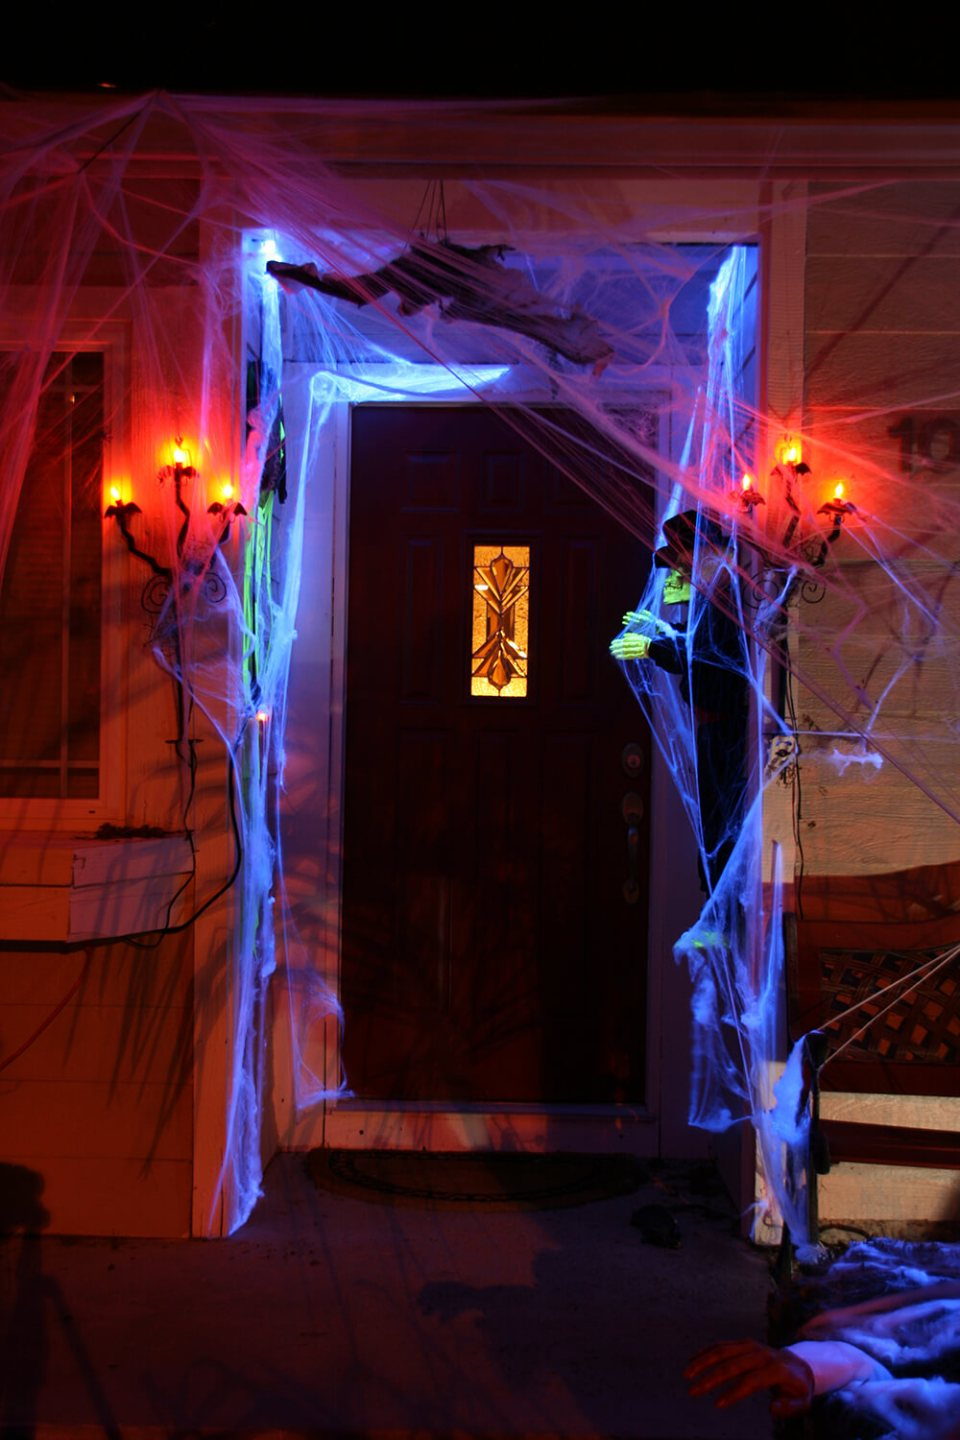 Halloween Door Decoration Ideas: Spooky Door